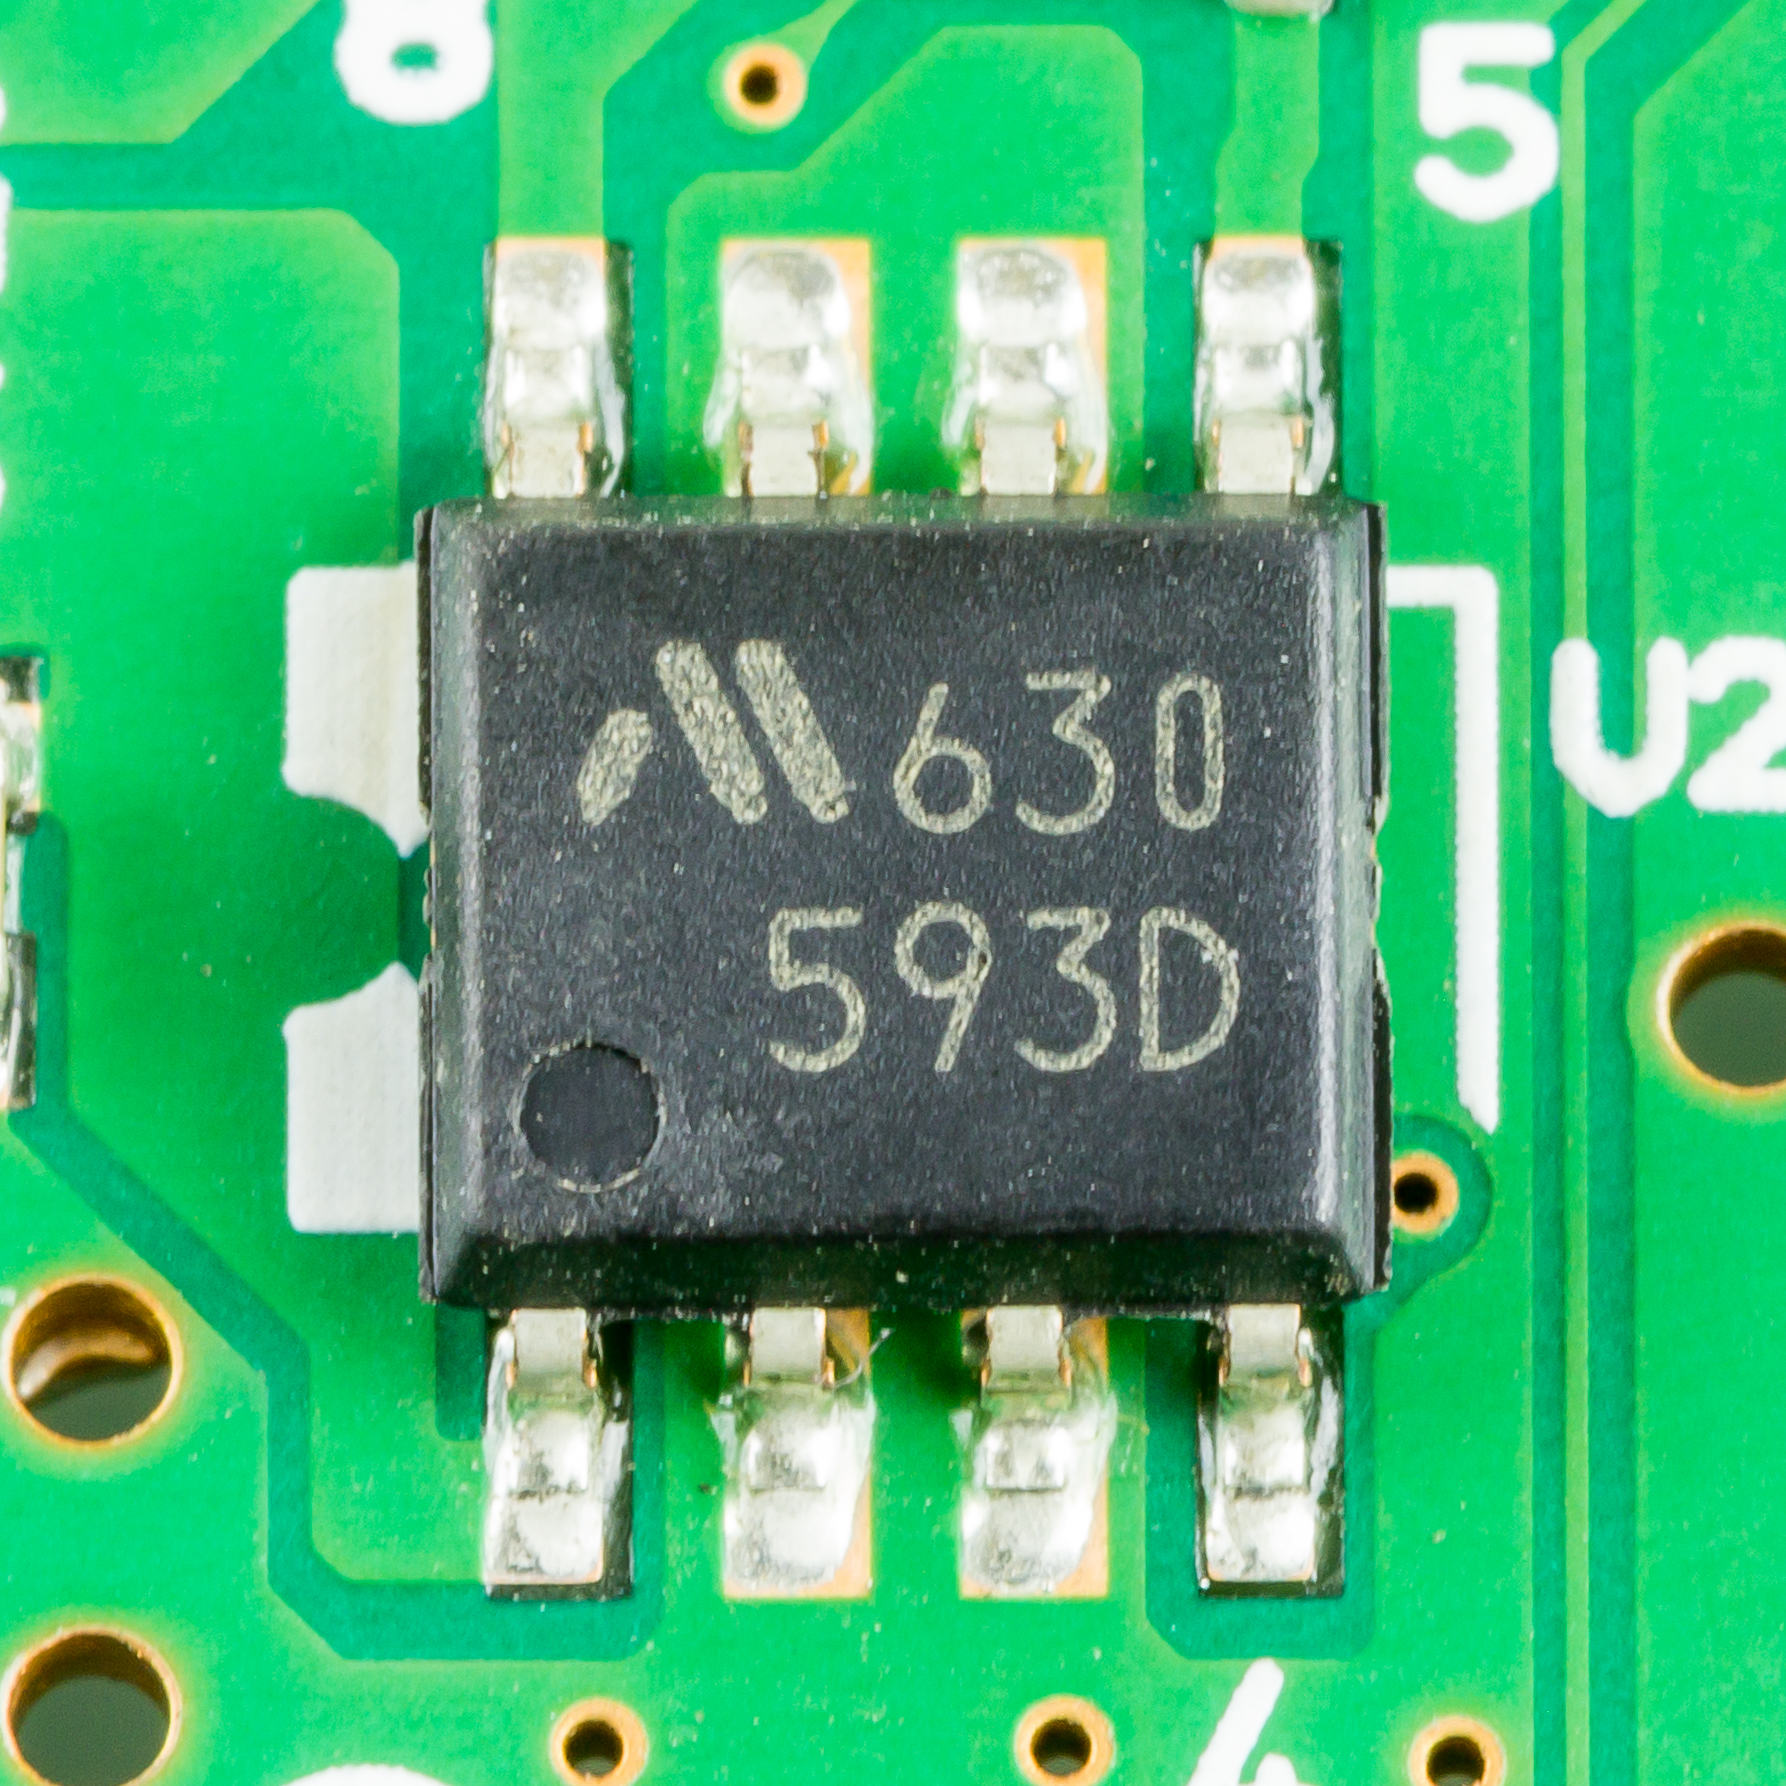 File:Brother DCP-115C - controller - Microchip Technology 630-2233.jpg